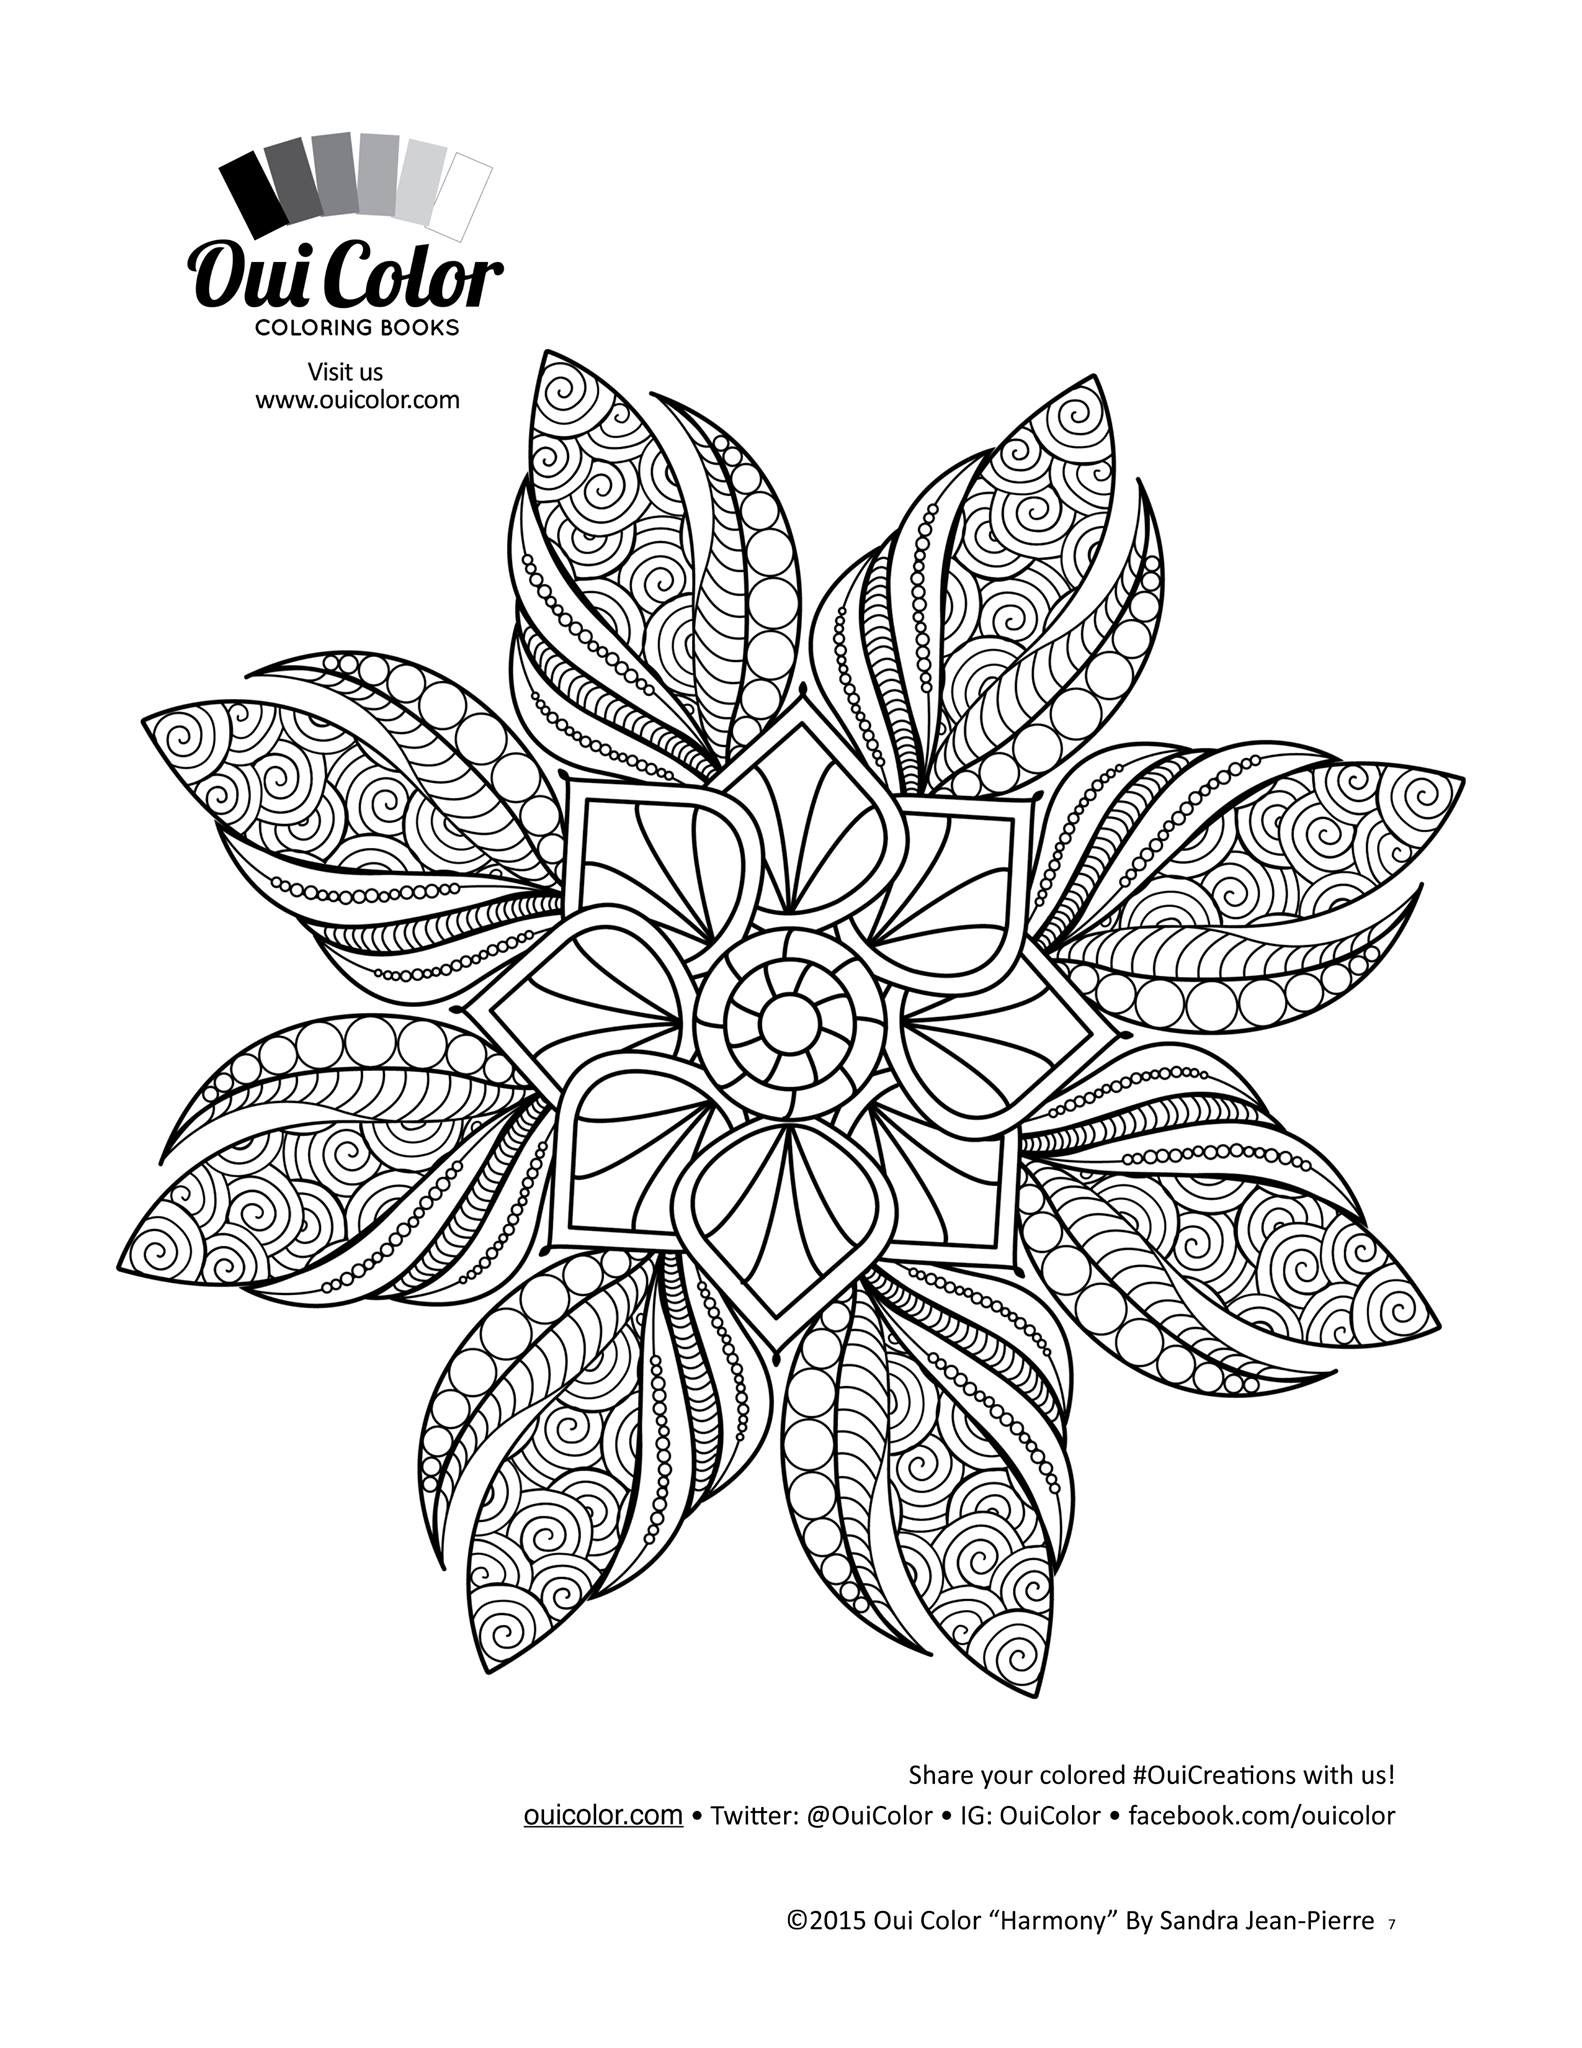 Pin By Gayle Larson On Pages To Color Lotus Flower Tattoo Flower Tattoo Coloring Pages